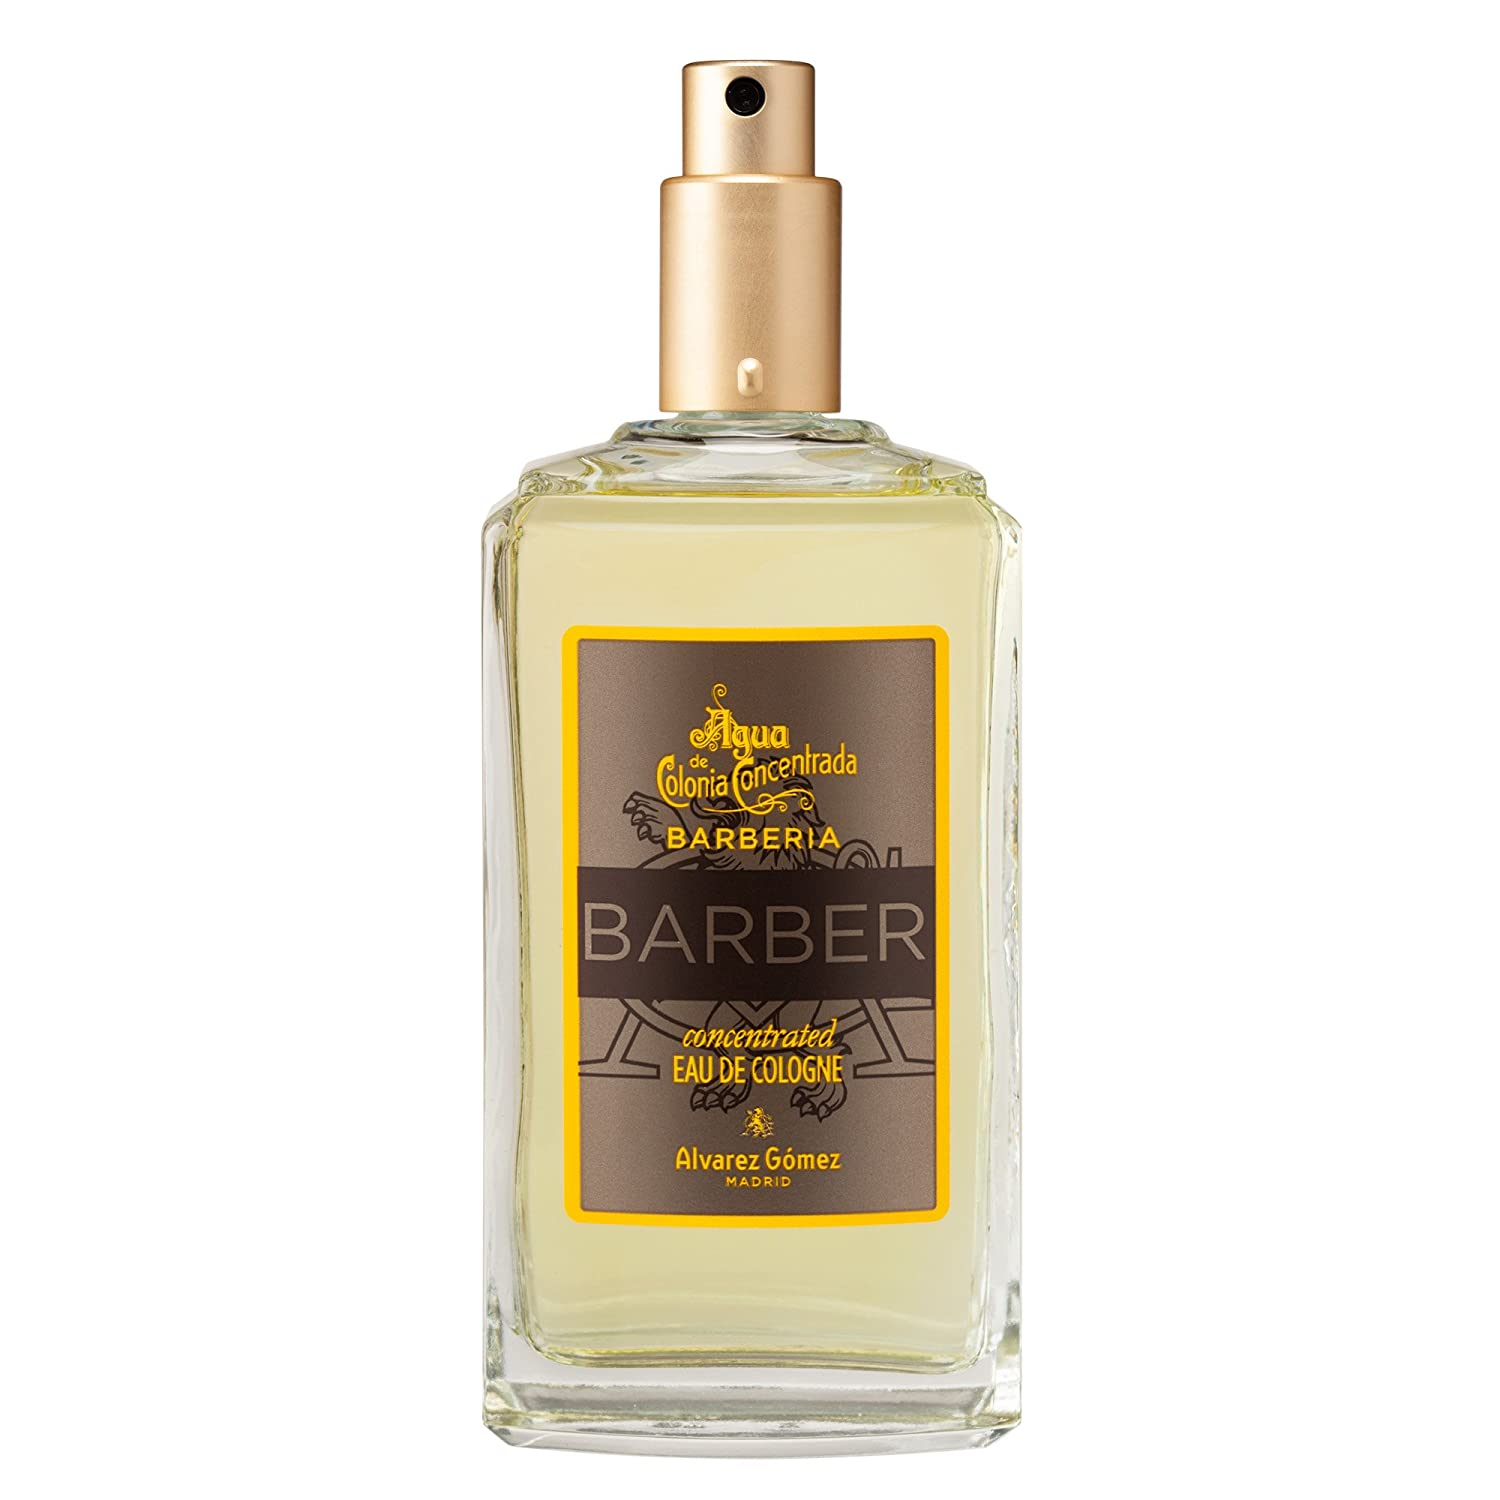 Alvarez Gomez Barberia - Agua de Colonia Concentrada - 150ml: Amazon.es: Belleza